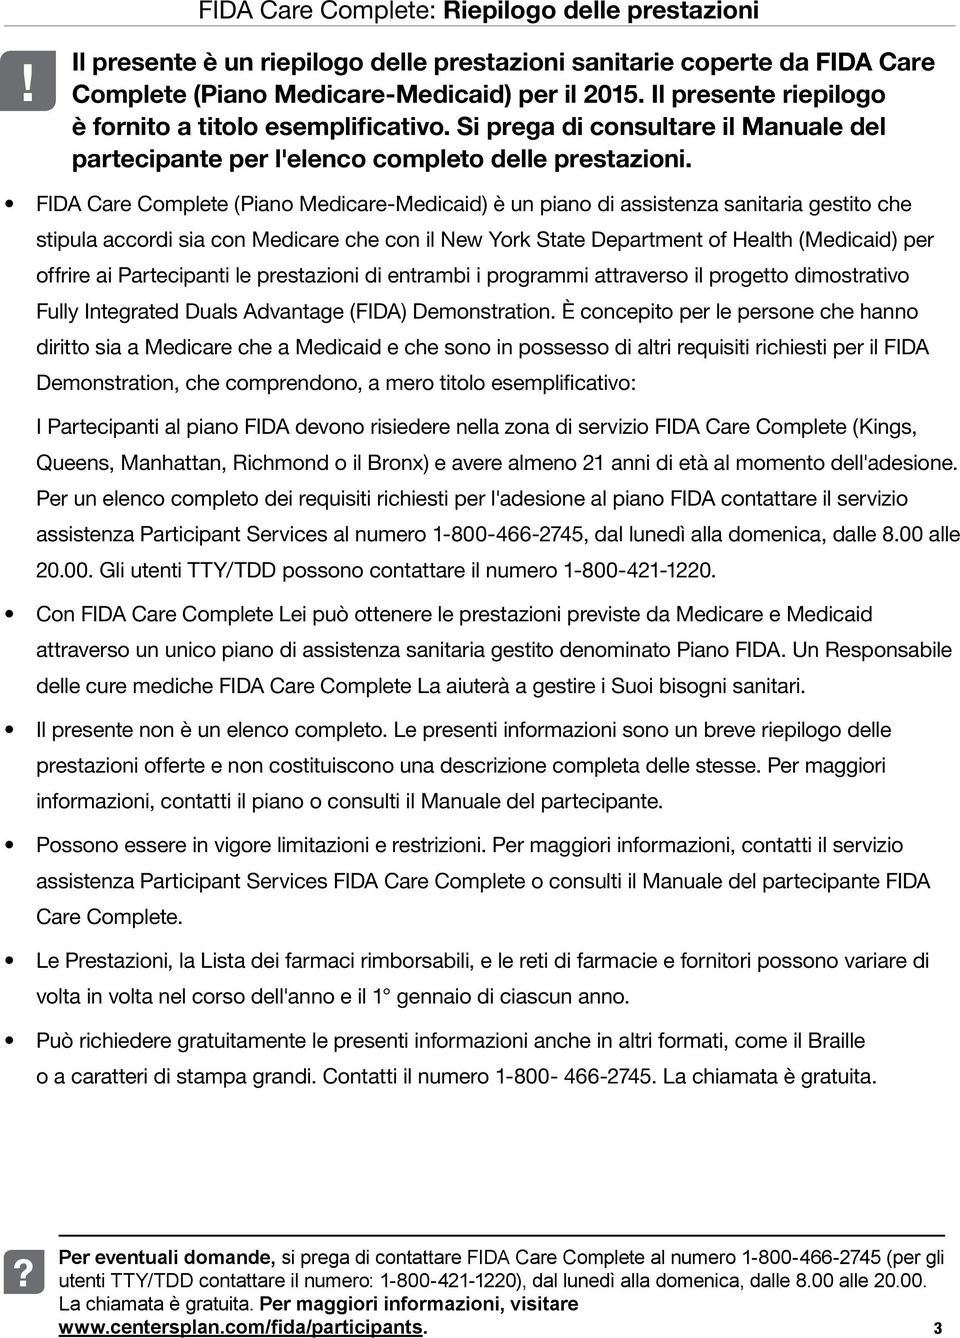 FIDA Care Complete (Piano Medicare-Medicaid) è un piano di assistenza sanitaria gestito che stipula accordi sia con Medicare che con il New York State Department of Health (Medicaid) per offrire ai